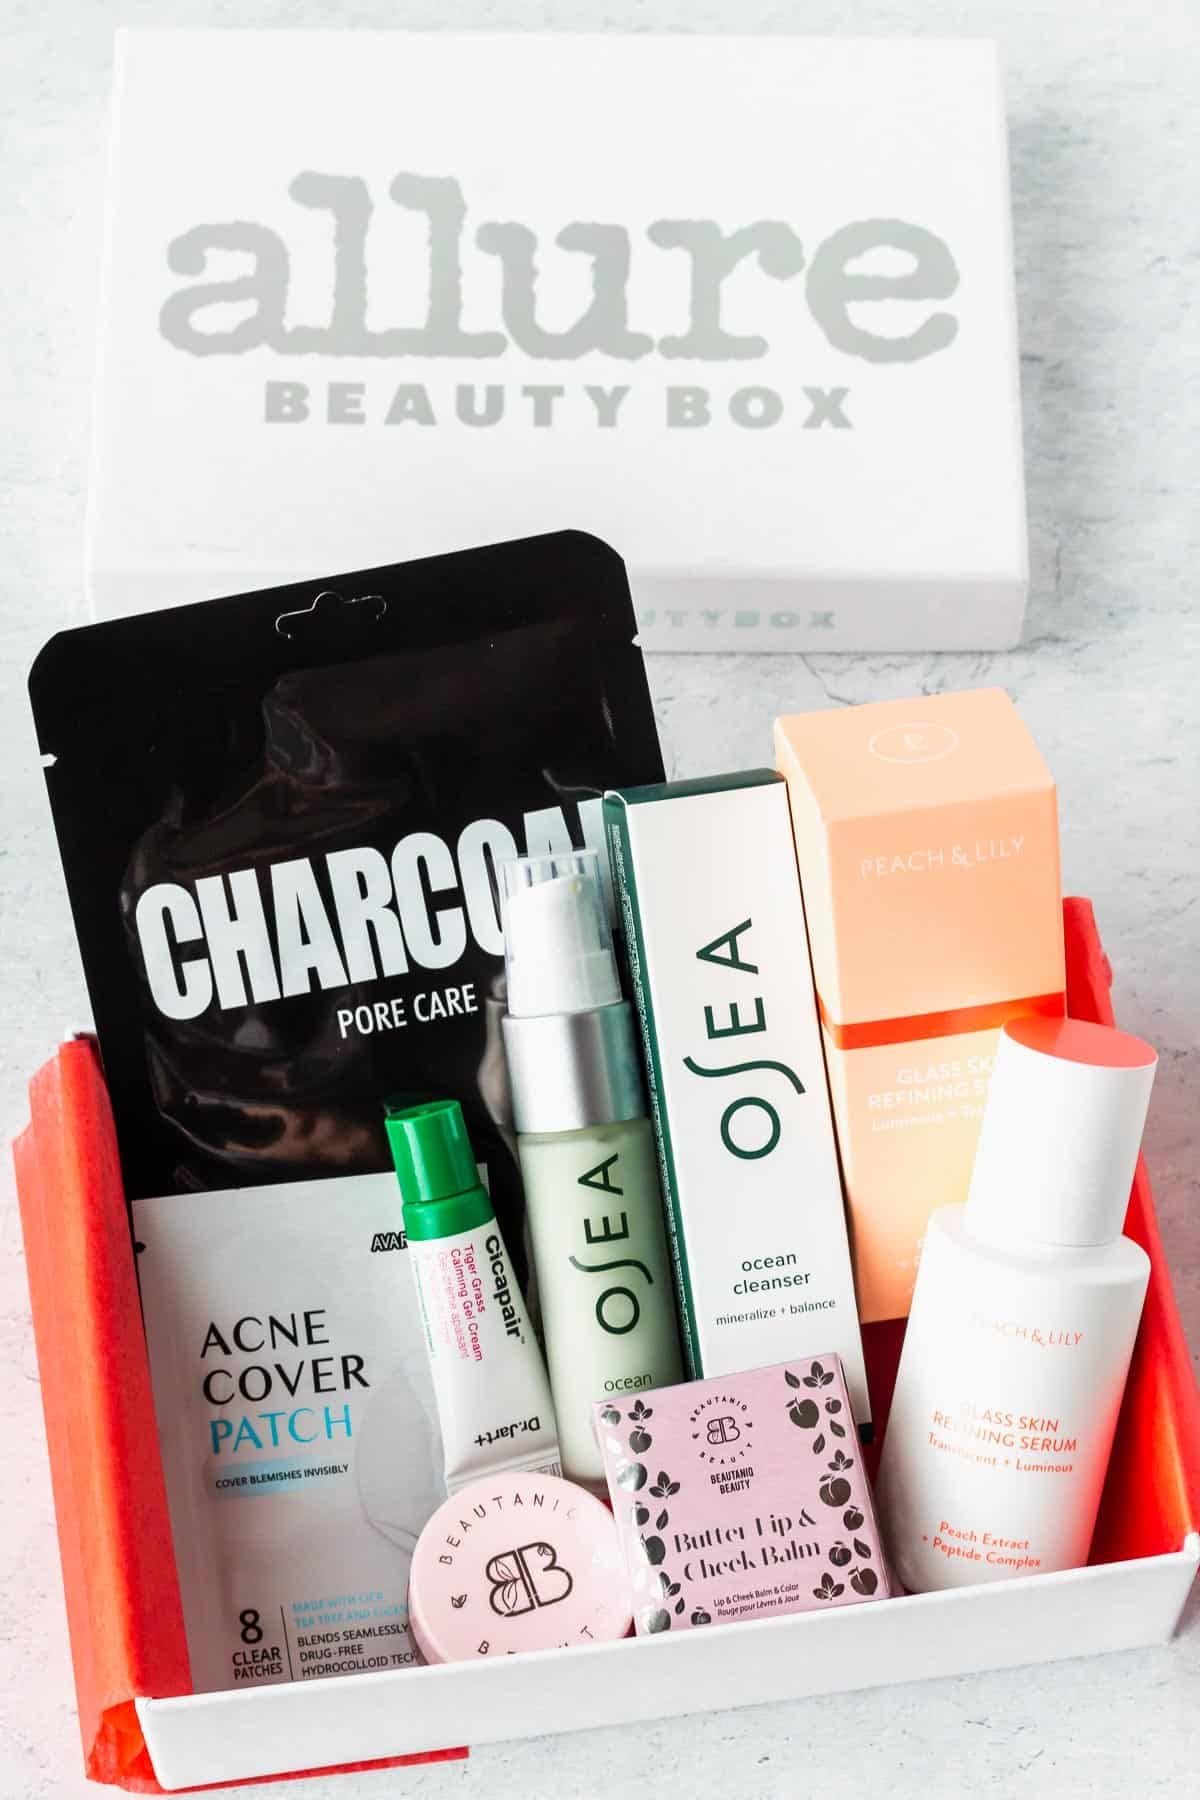 July 2020 Allure Beauty Box with all of the contents displayed inside